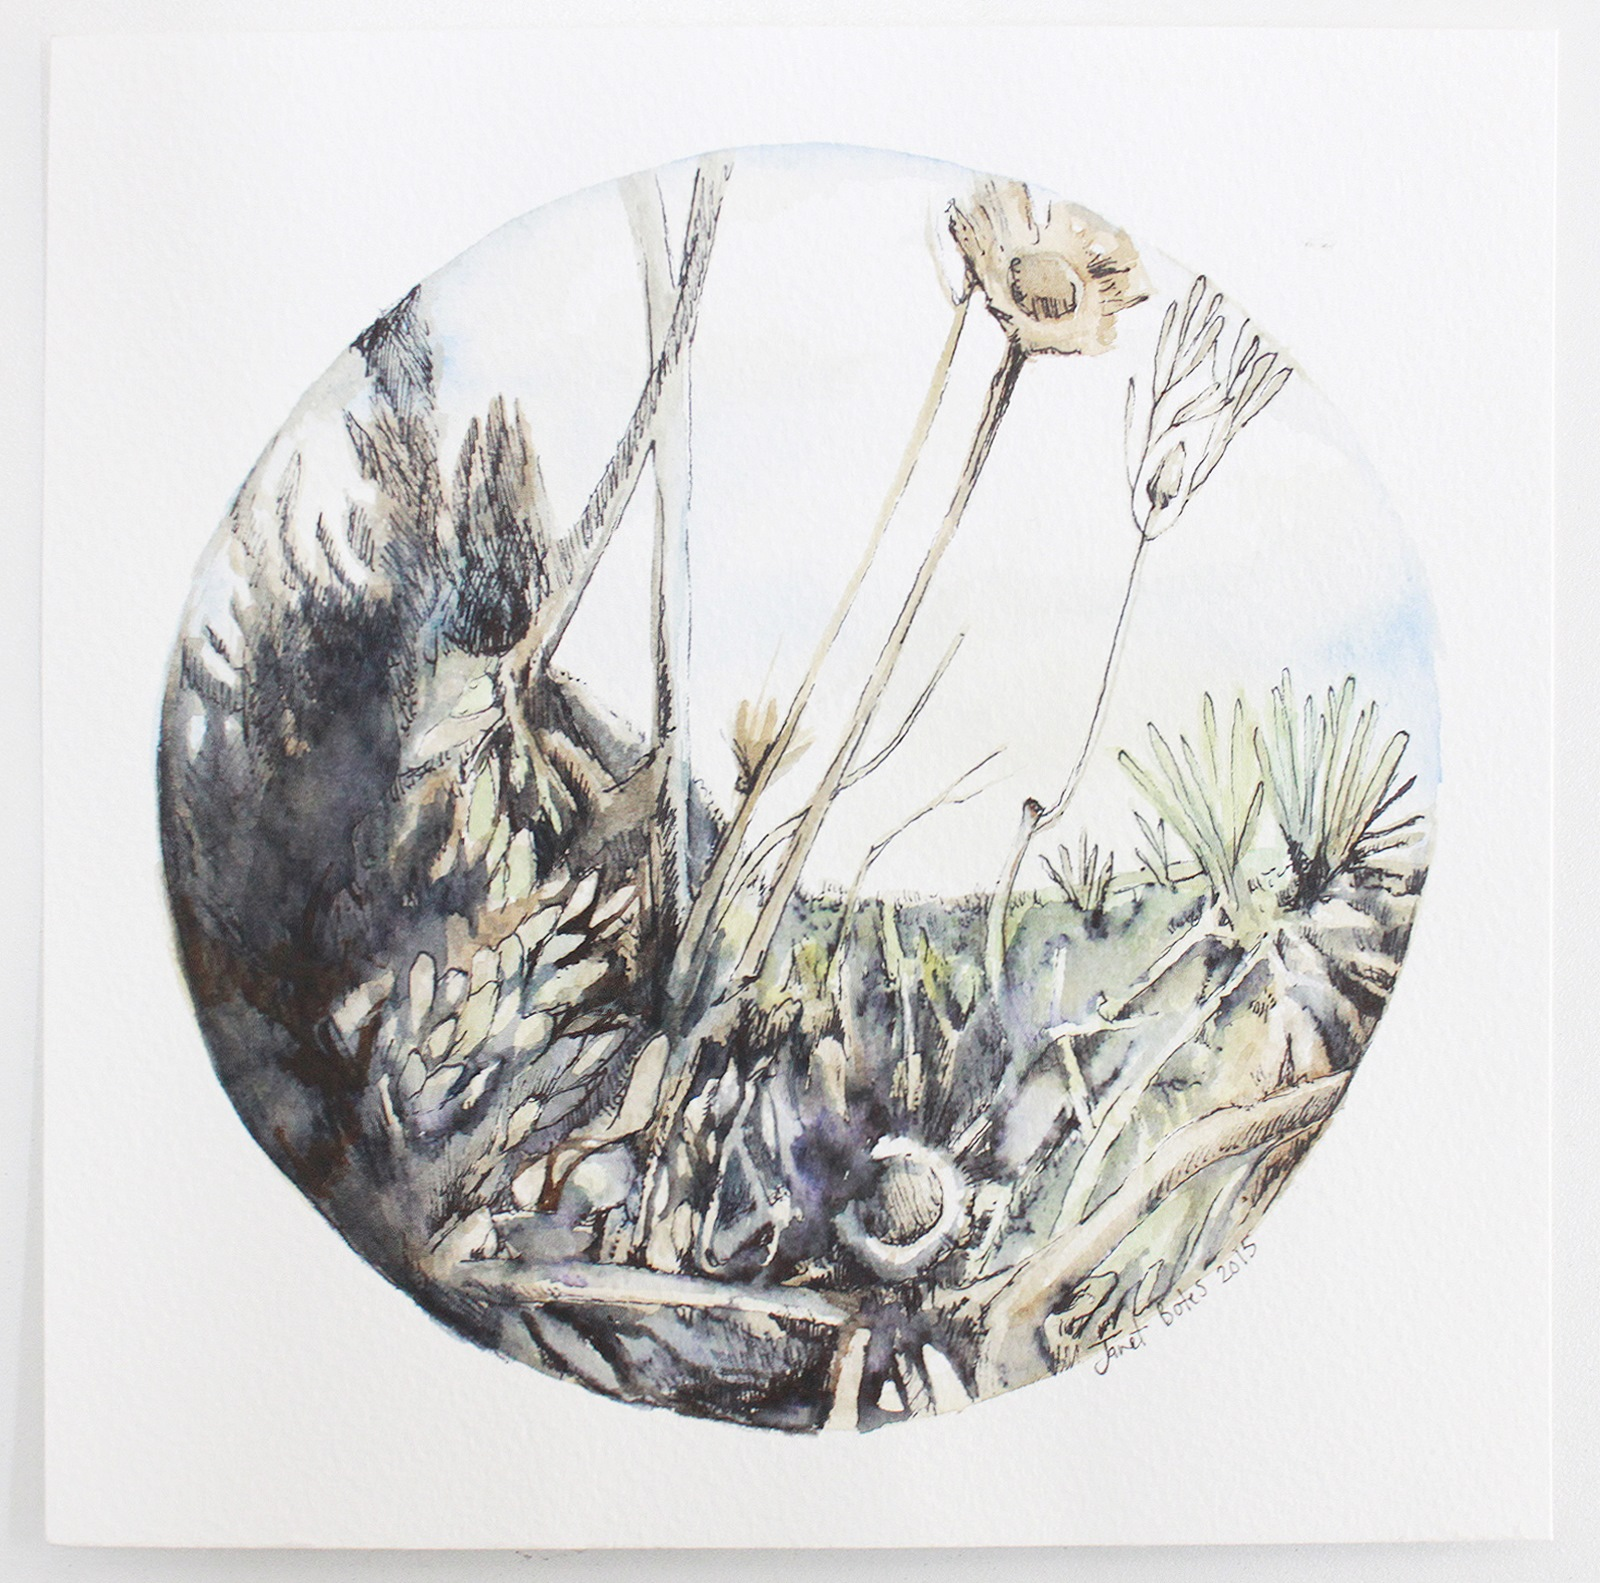 Watercolour and ink drawing by Janet Botes of fynbos plants